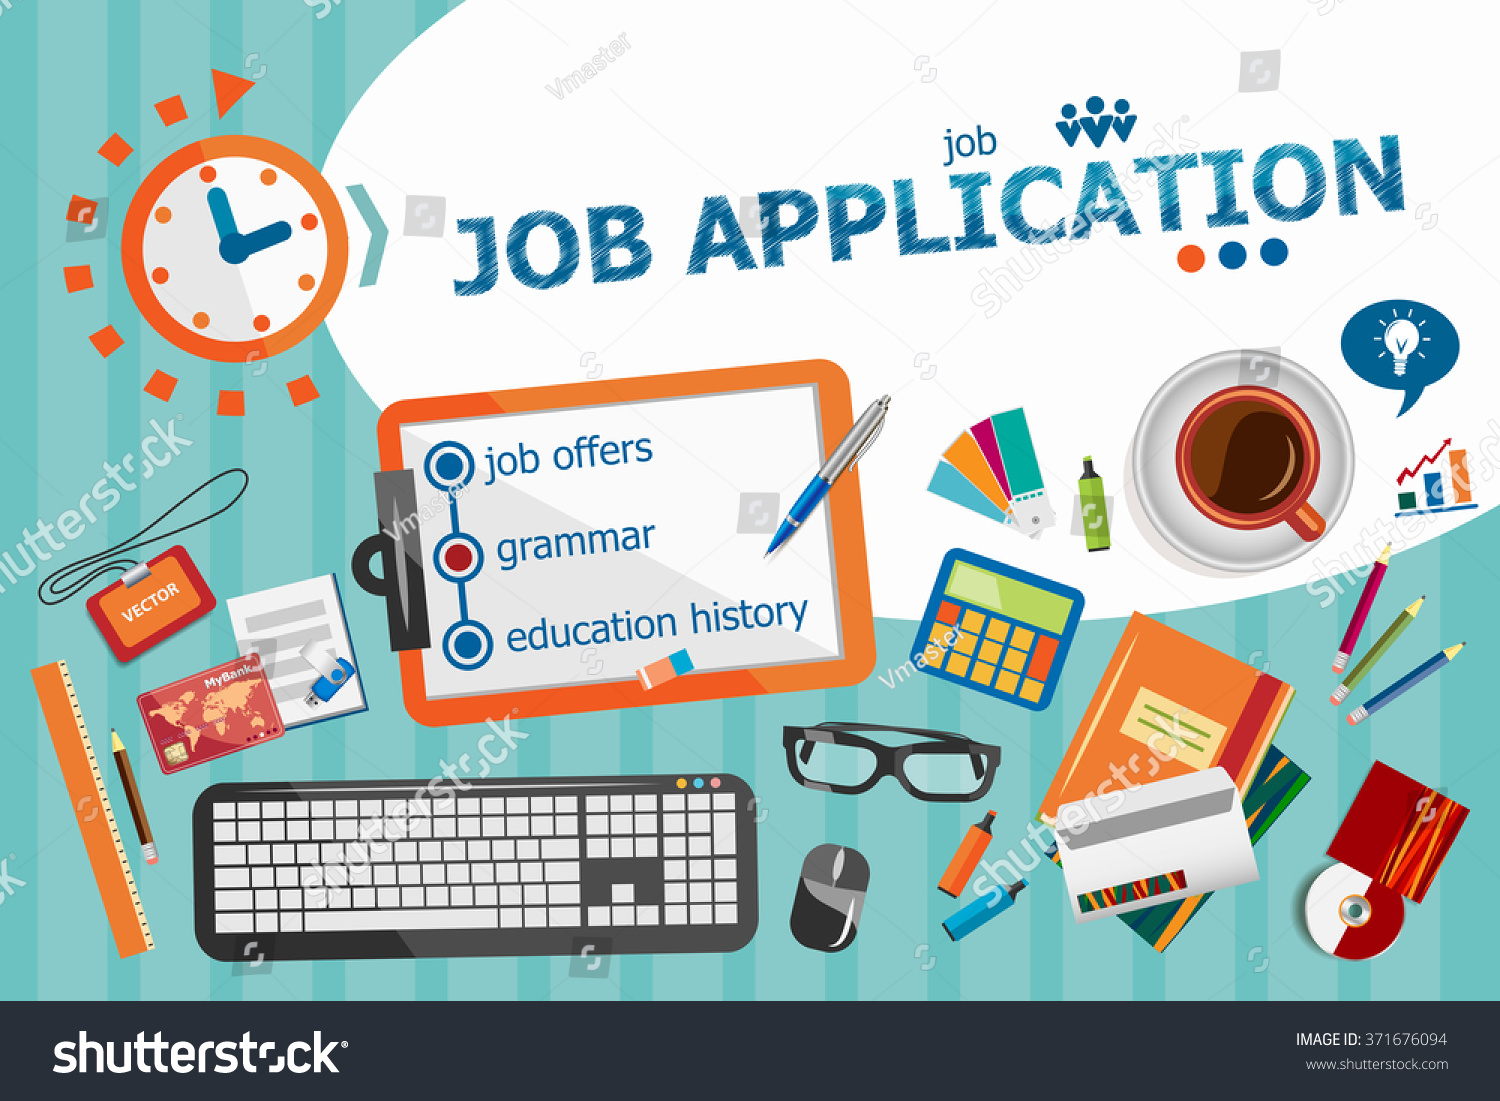 Poster design jobs online - Job Application Design Concept Typographic Poster Job Application Concepts For Web Banner And Printed